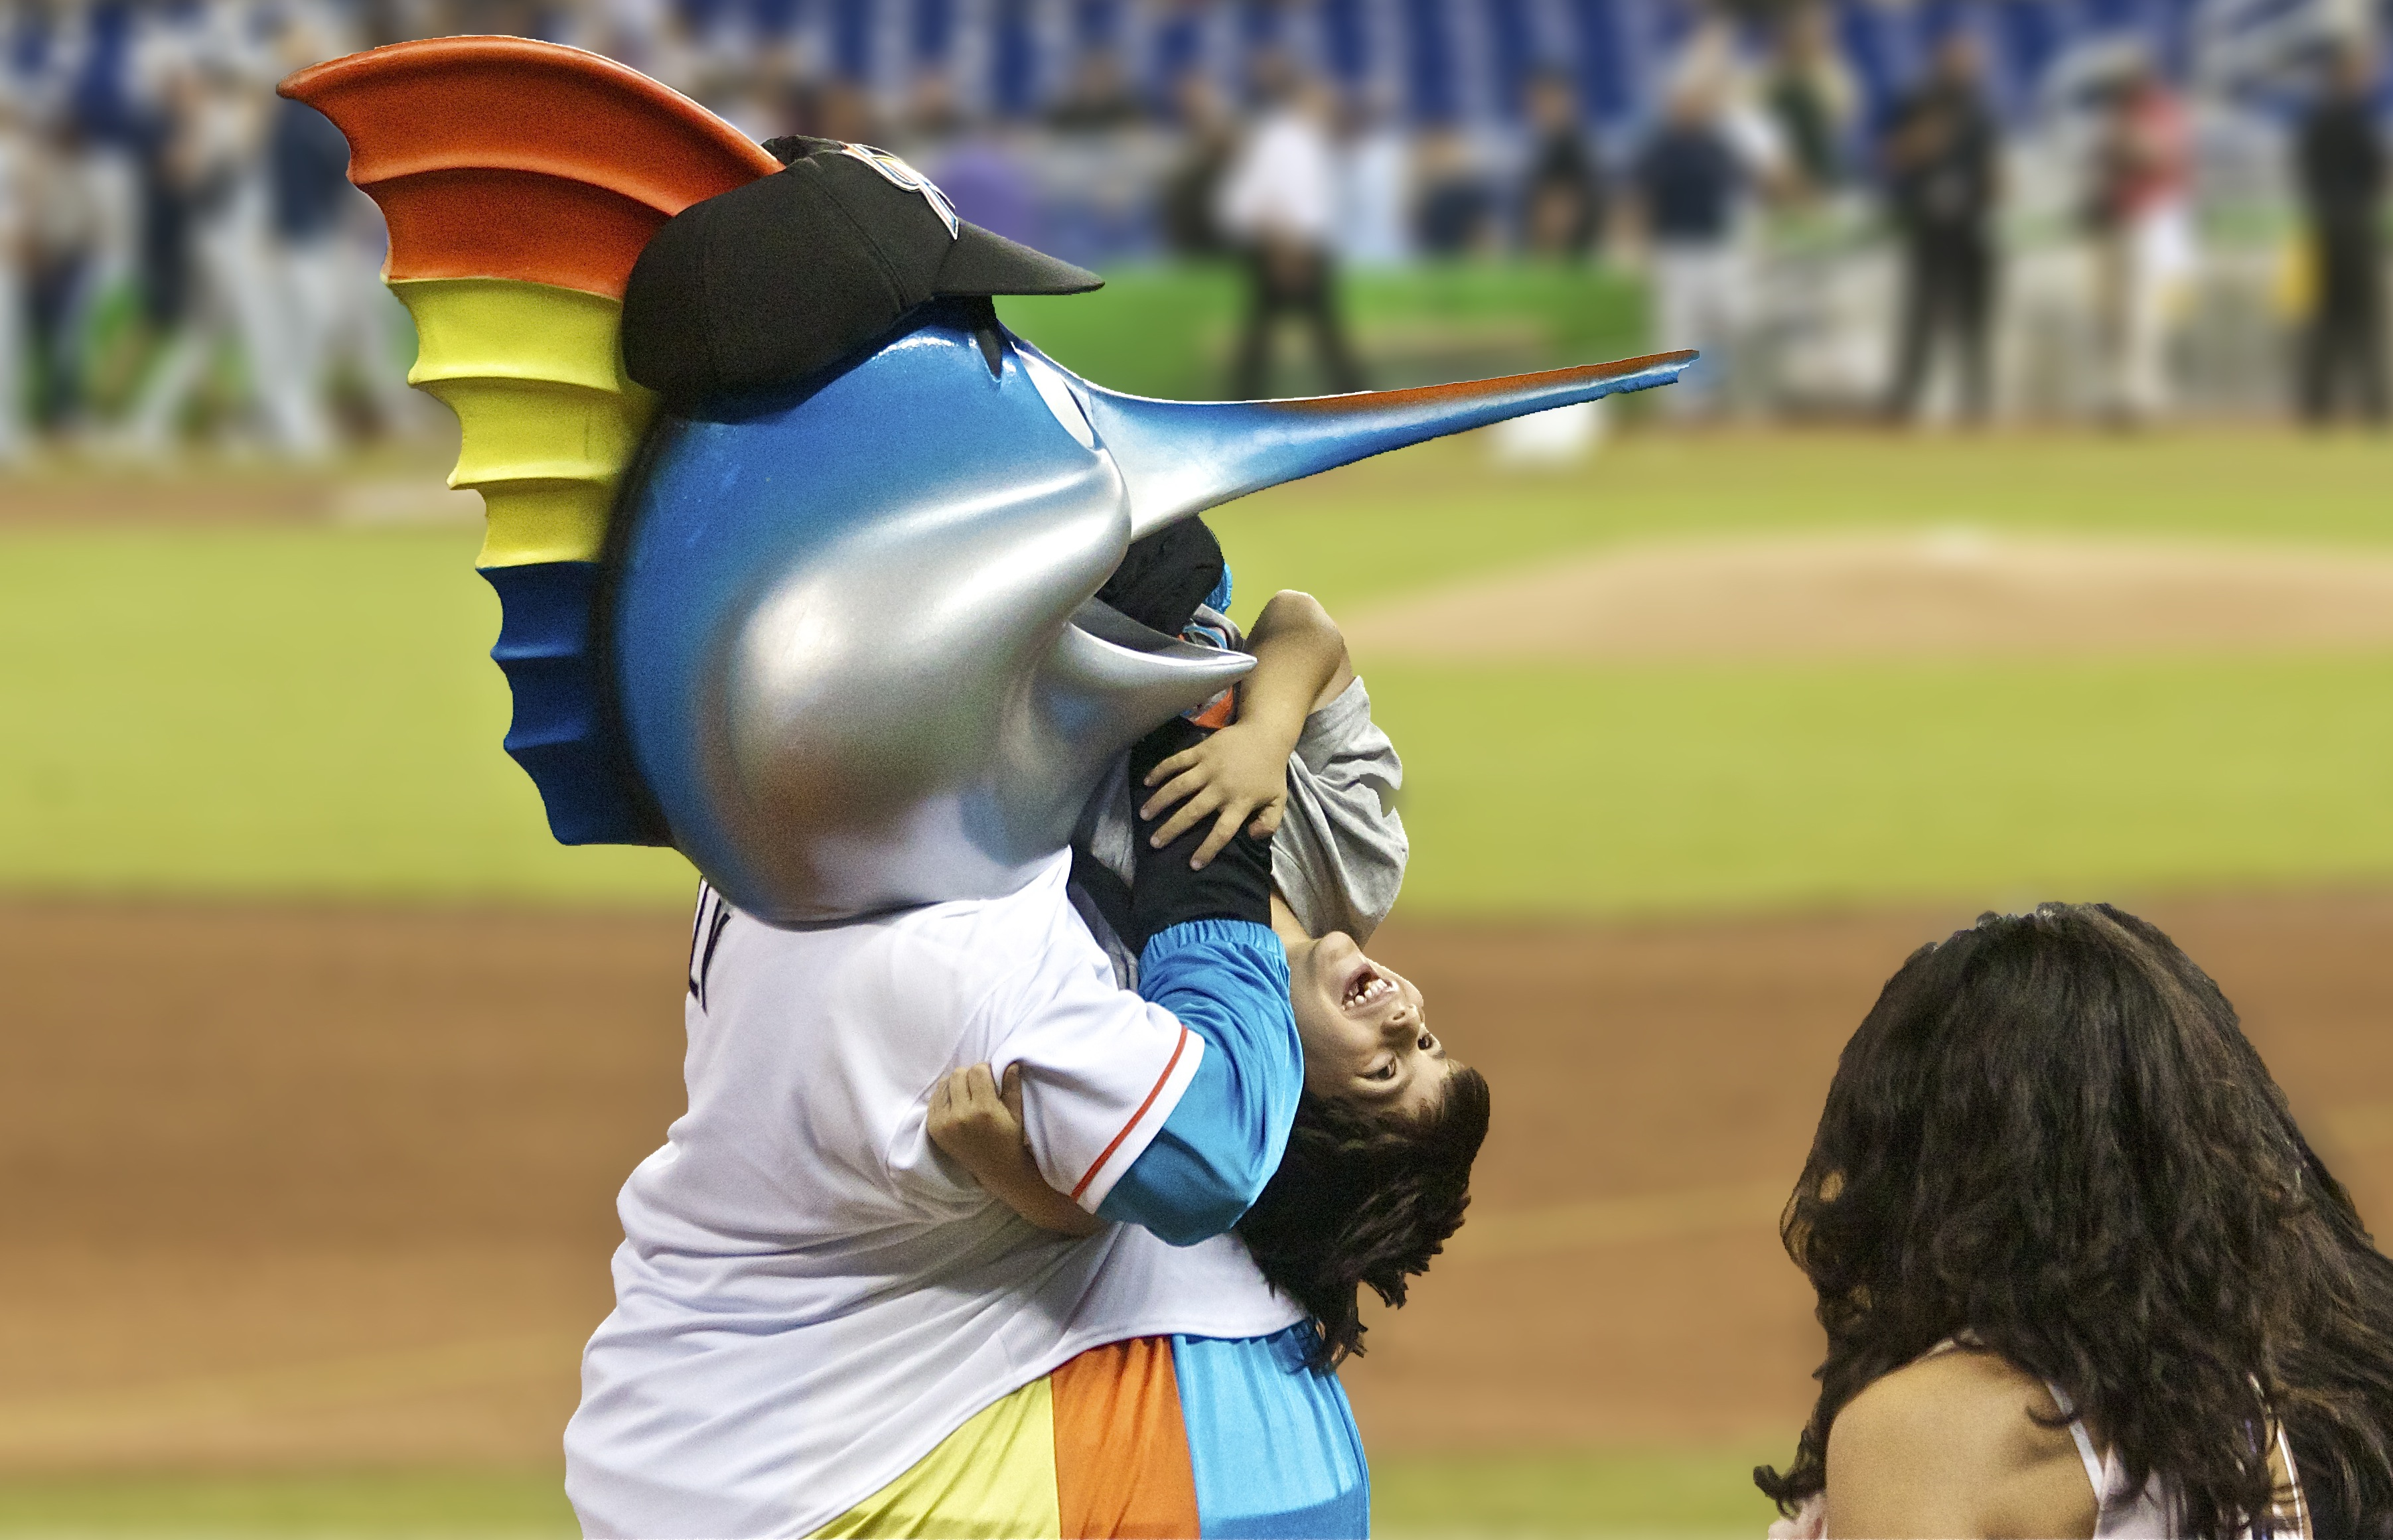 Billy The Marlin Disturbing Mlb Mascots